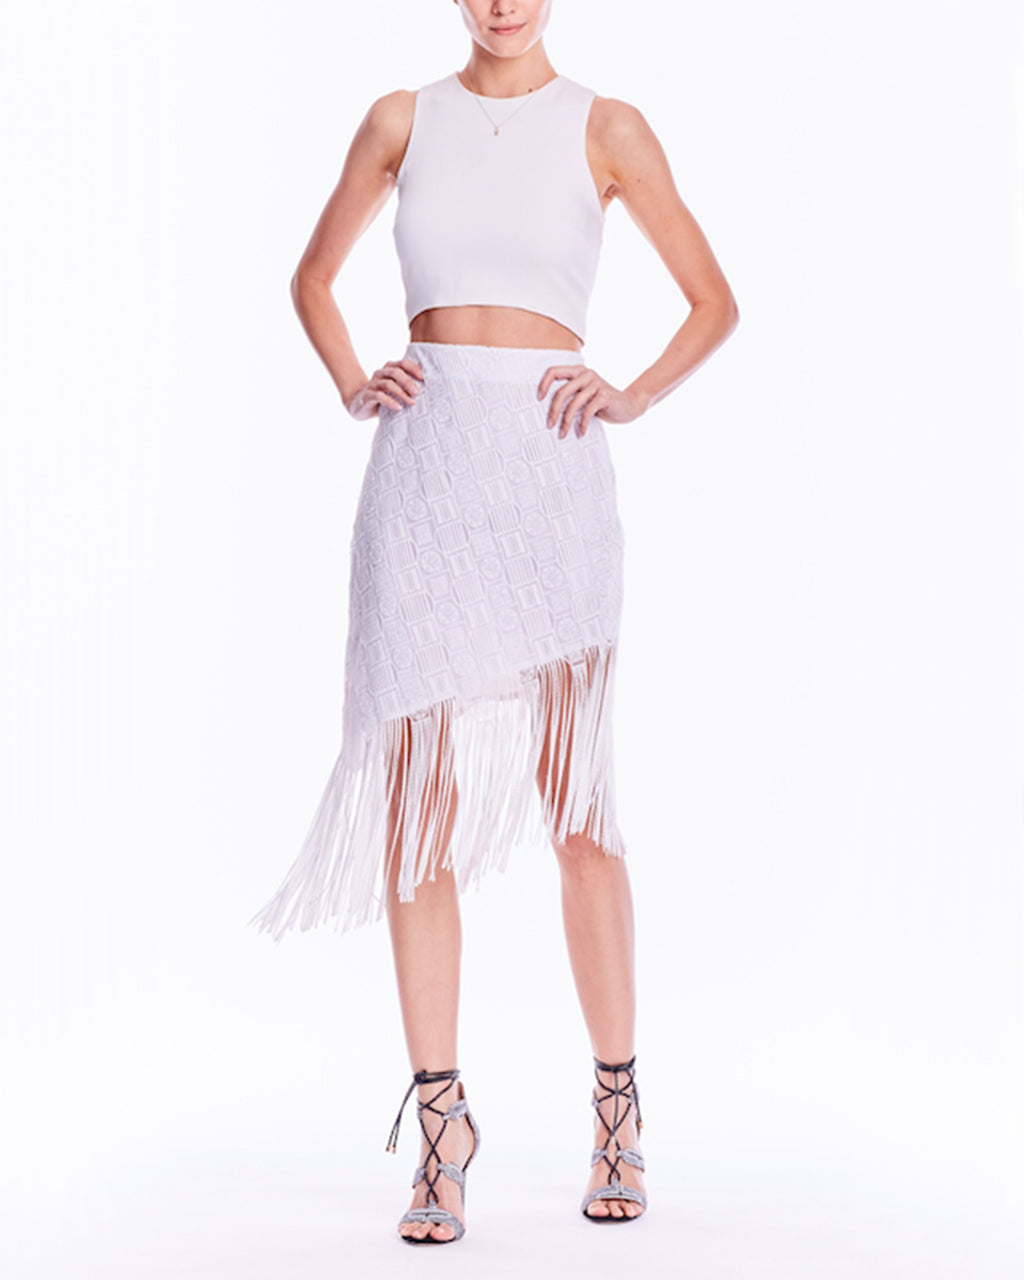 BL10109 - FRINGLE MOLA ASYMETRIC SKIRT - samples - bottoms - Cue the music. This asymmetrical skirt is essential for your evening with the girls: the hem is adorned with a chic row of fringe that moves with you. The white hue makes it simple to style. Dance, dance, dance. Final Sale